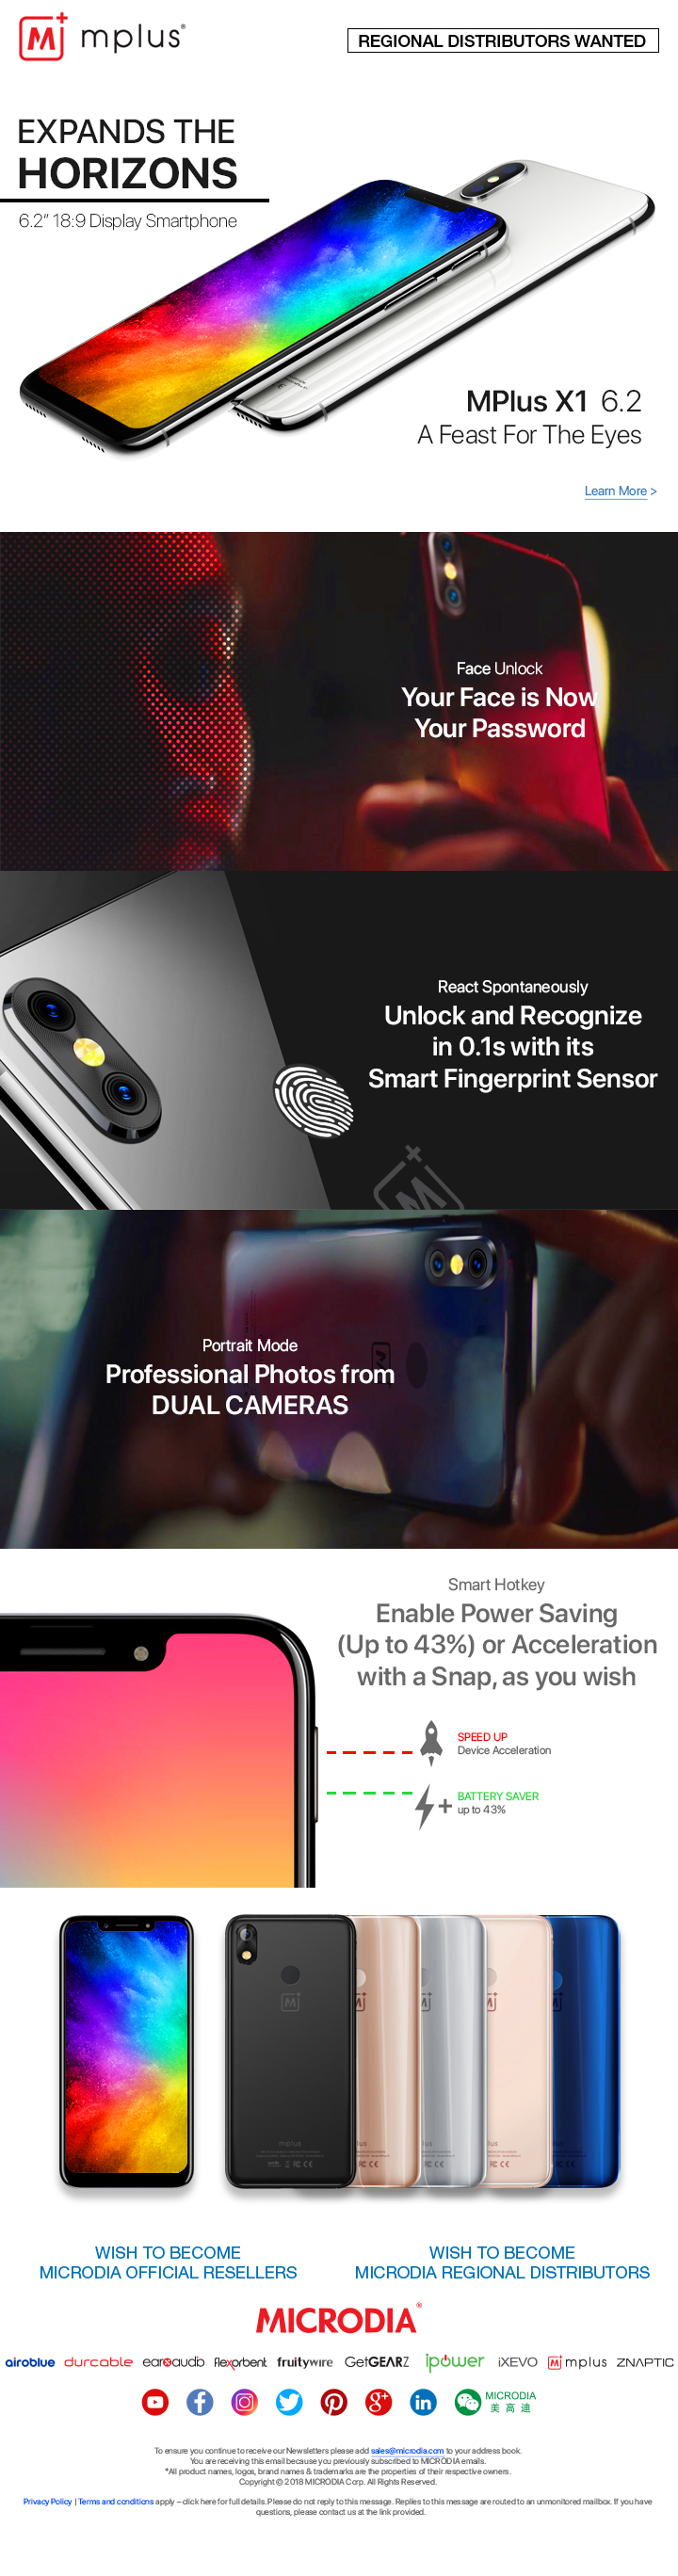 MPlus Launches Full Display Smartpho